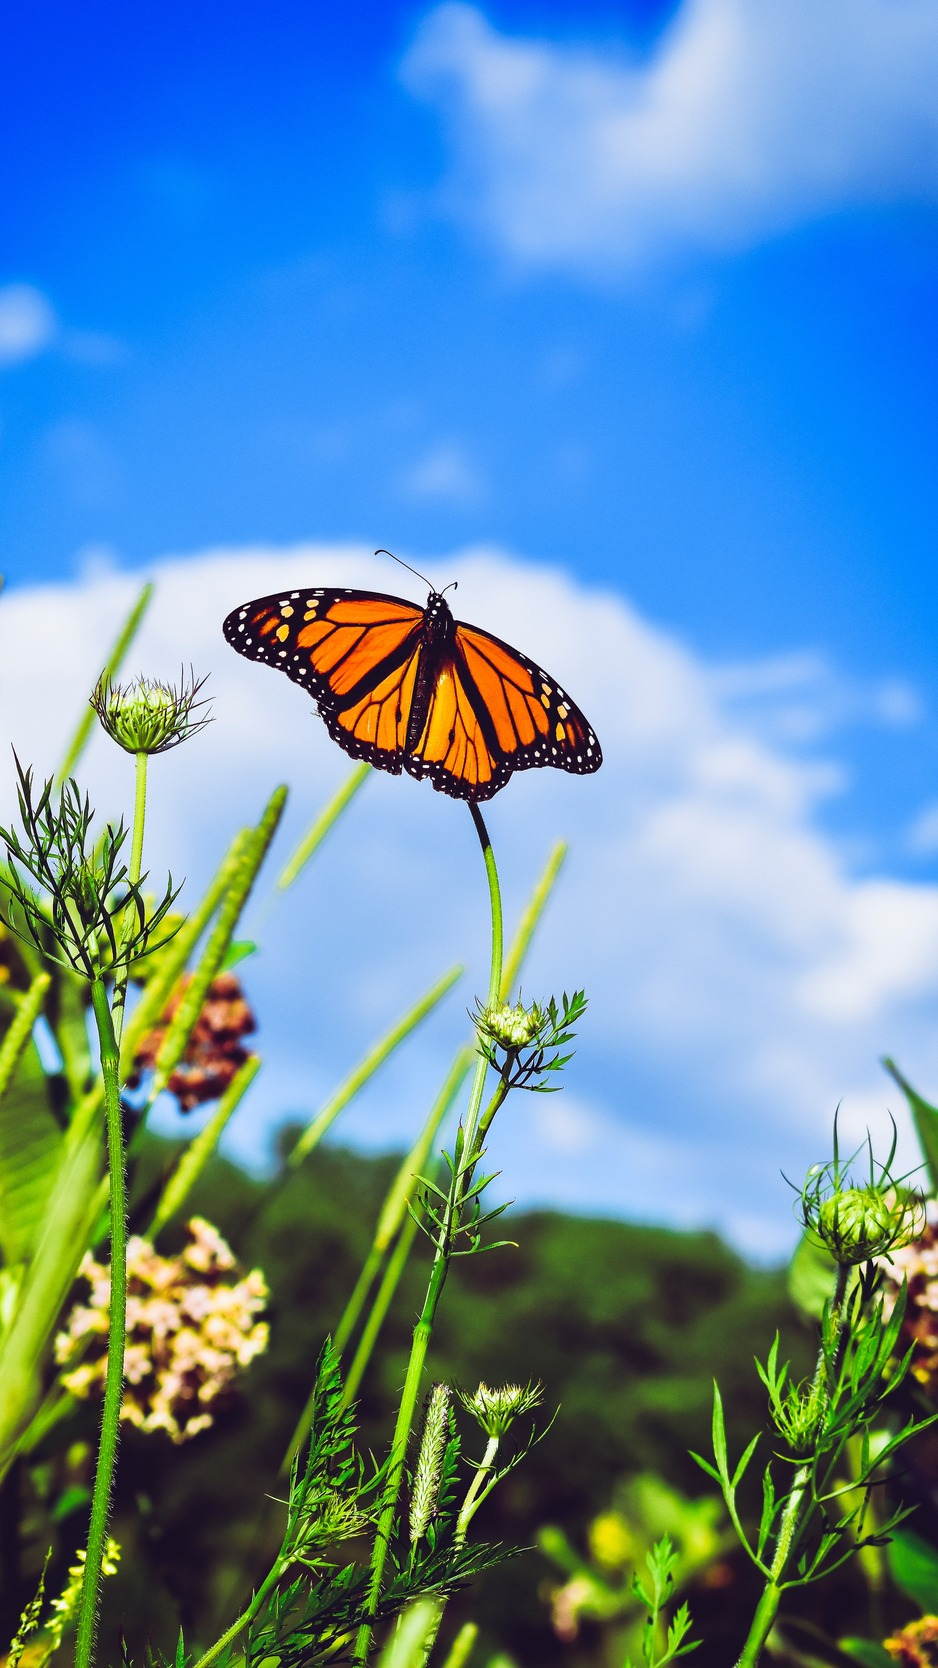 Download wallpaper 938x1668 monarch butterfly butterfly close up 938x1668